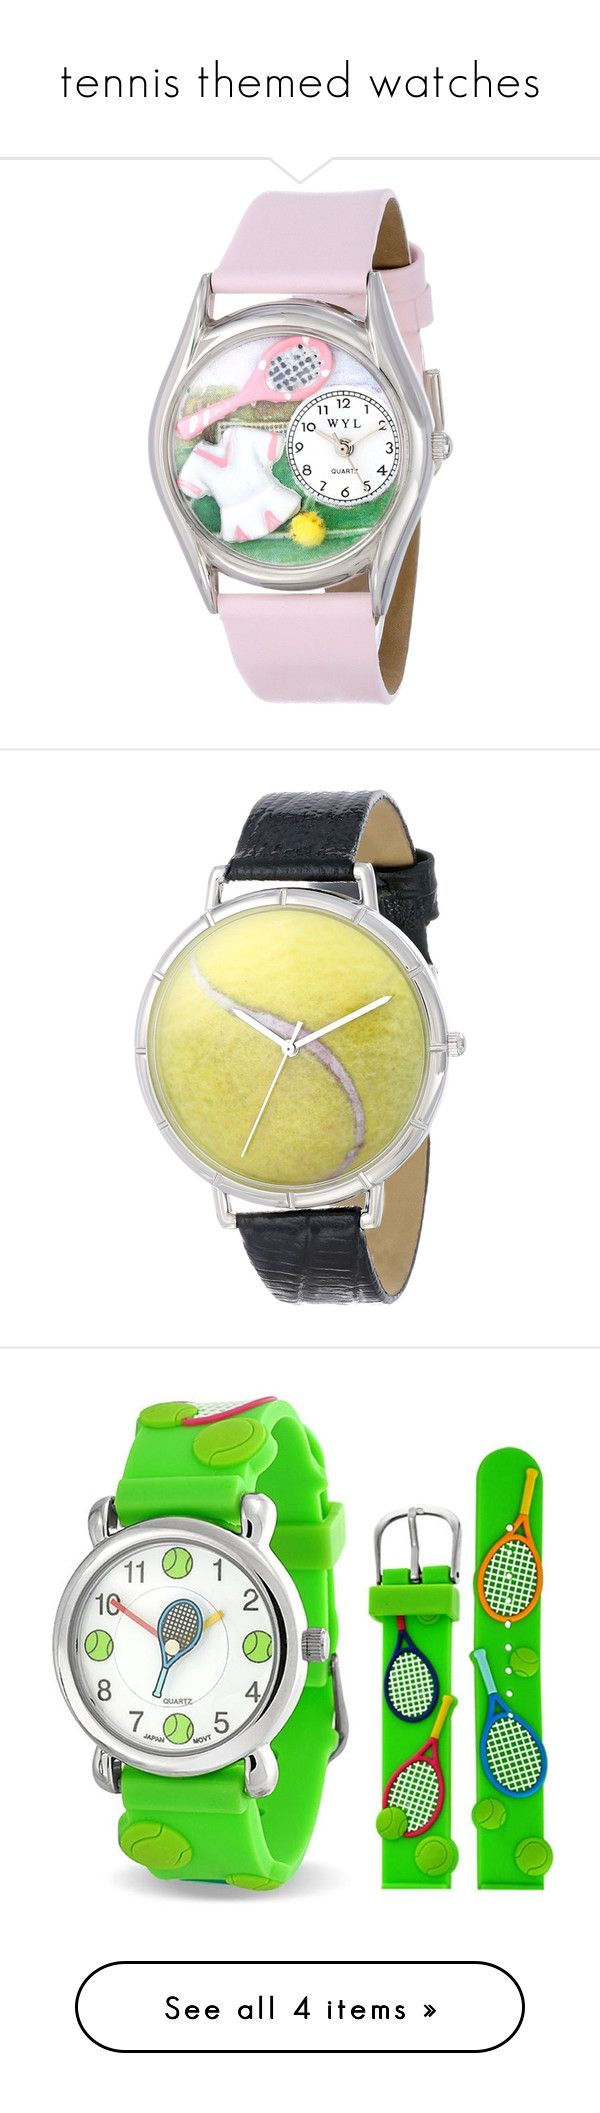 """tennis themed watches"" by tennisidentity ❤ liked on Polyvore featuring jewelry, watches, leather jewelry, pink leather watches, whimsical watches, pink watches, hand crafted jewelry, silvertone watches, black wrist watch and sports watches"